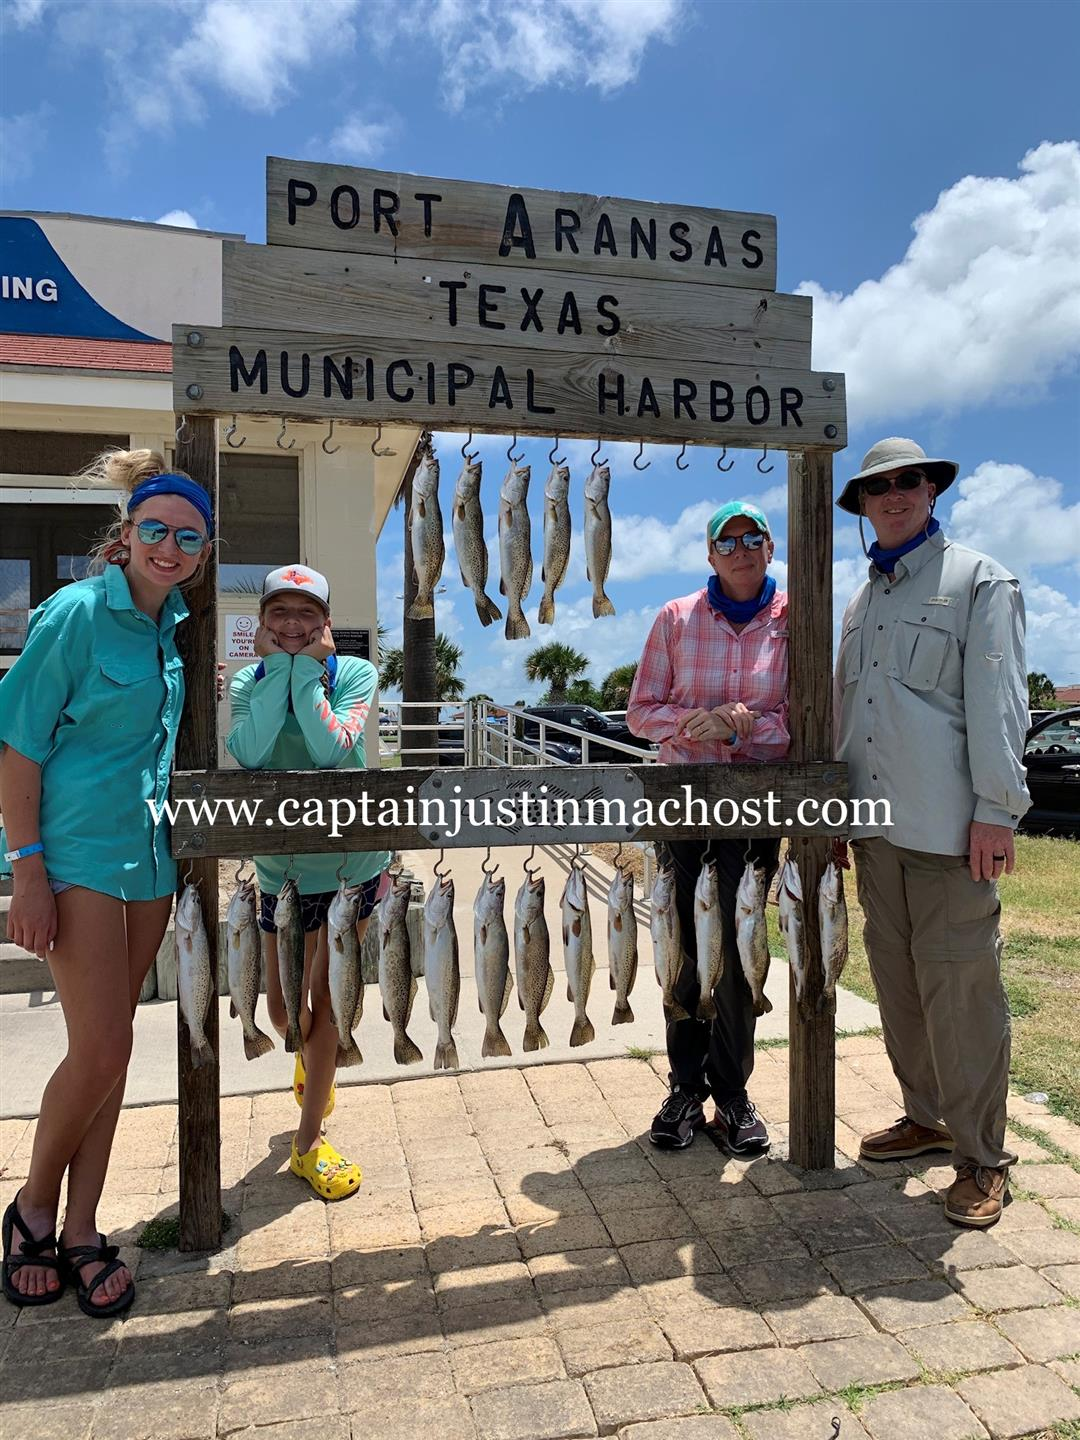 Family of 4 in front of the Port Arkansas Texas Municipal Harbor after fishing